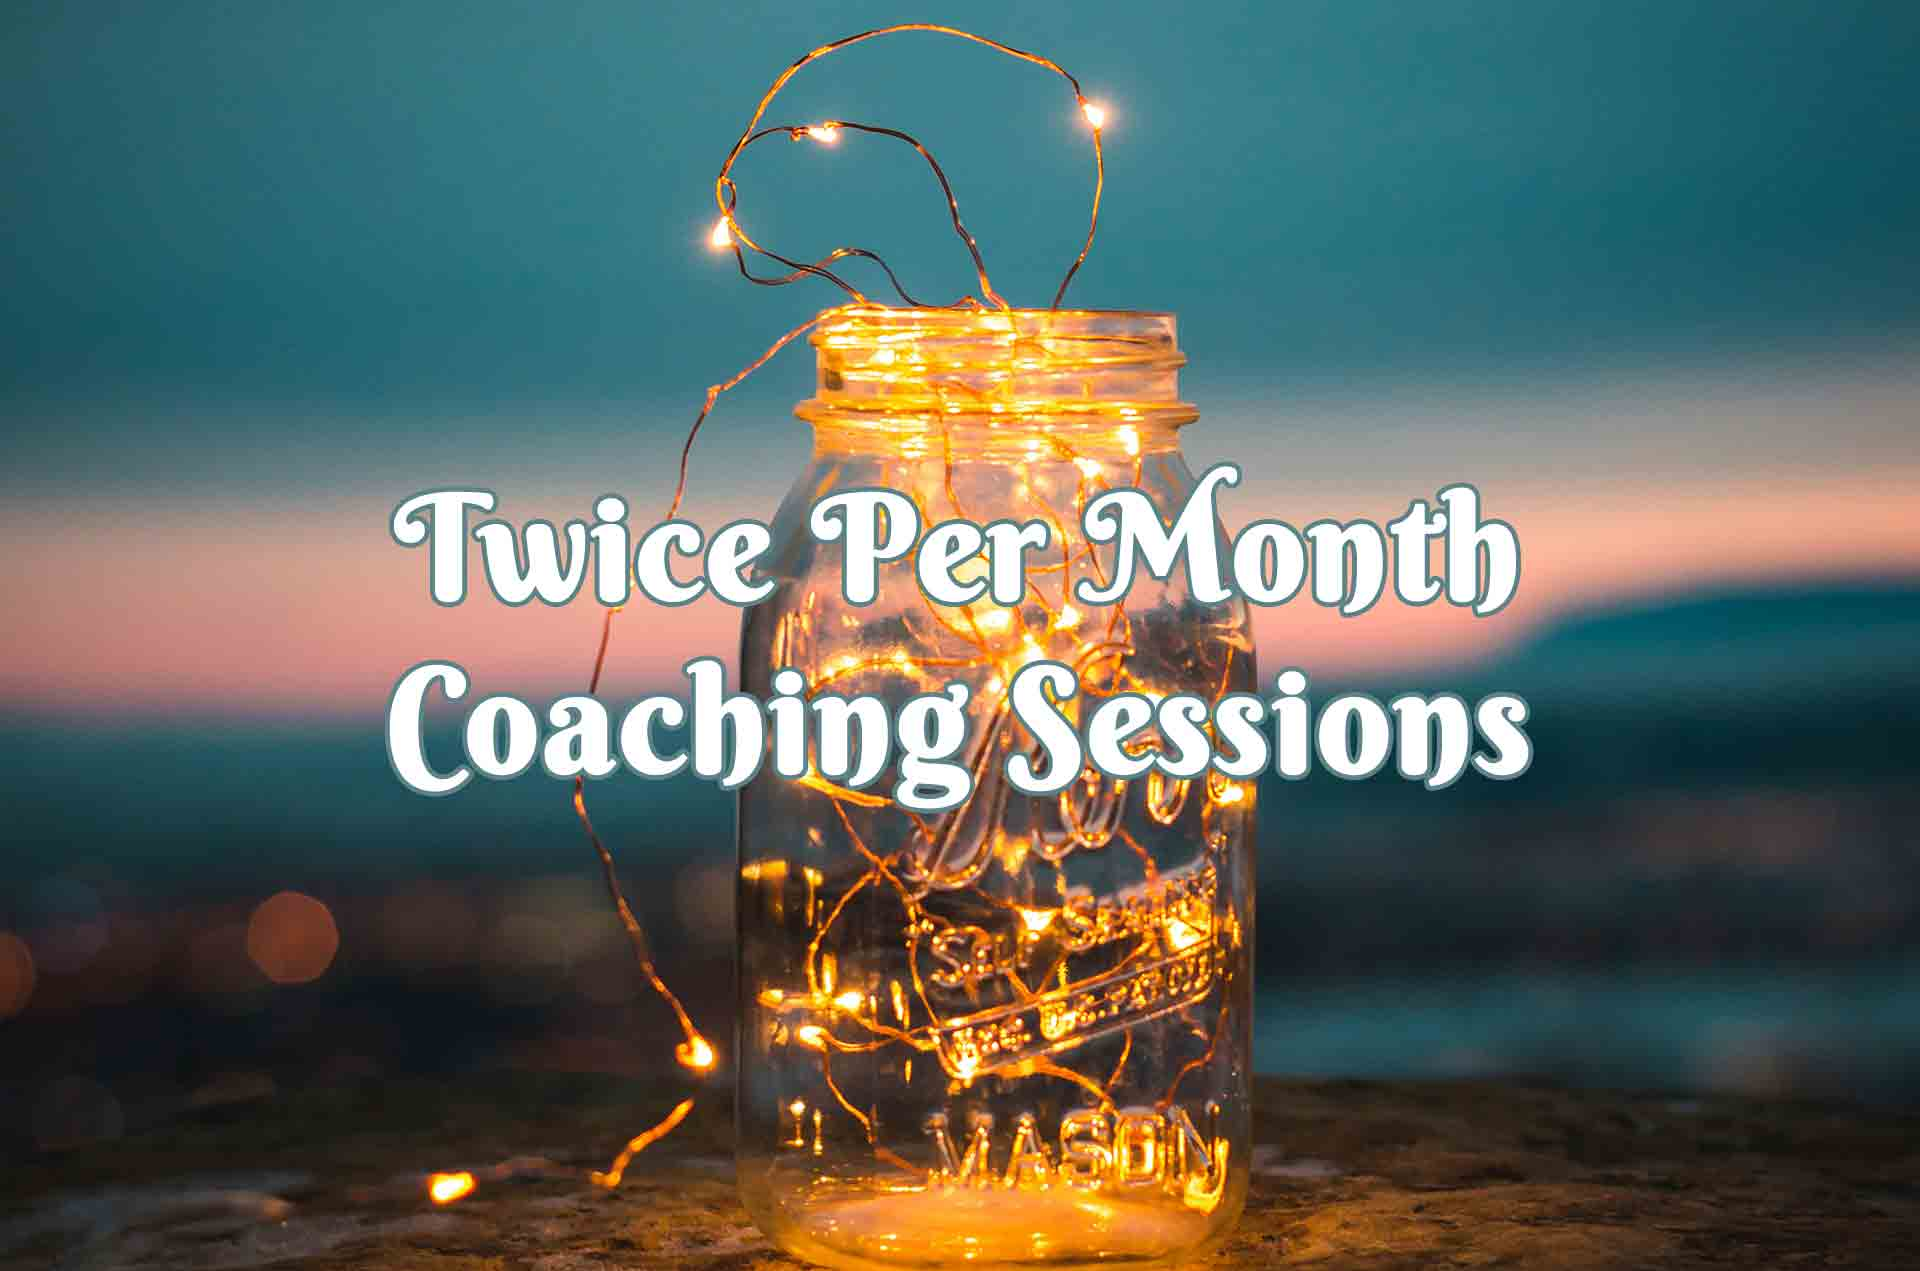 Twice Per Month Intuitive Spiritual Life Coaching Sessions